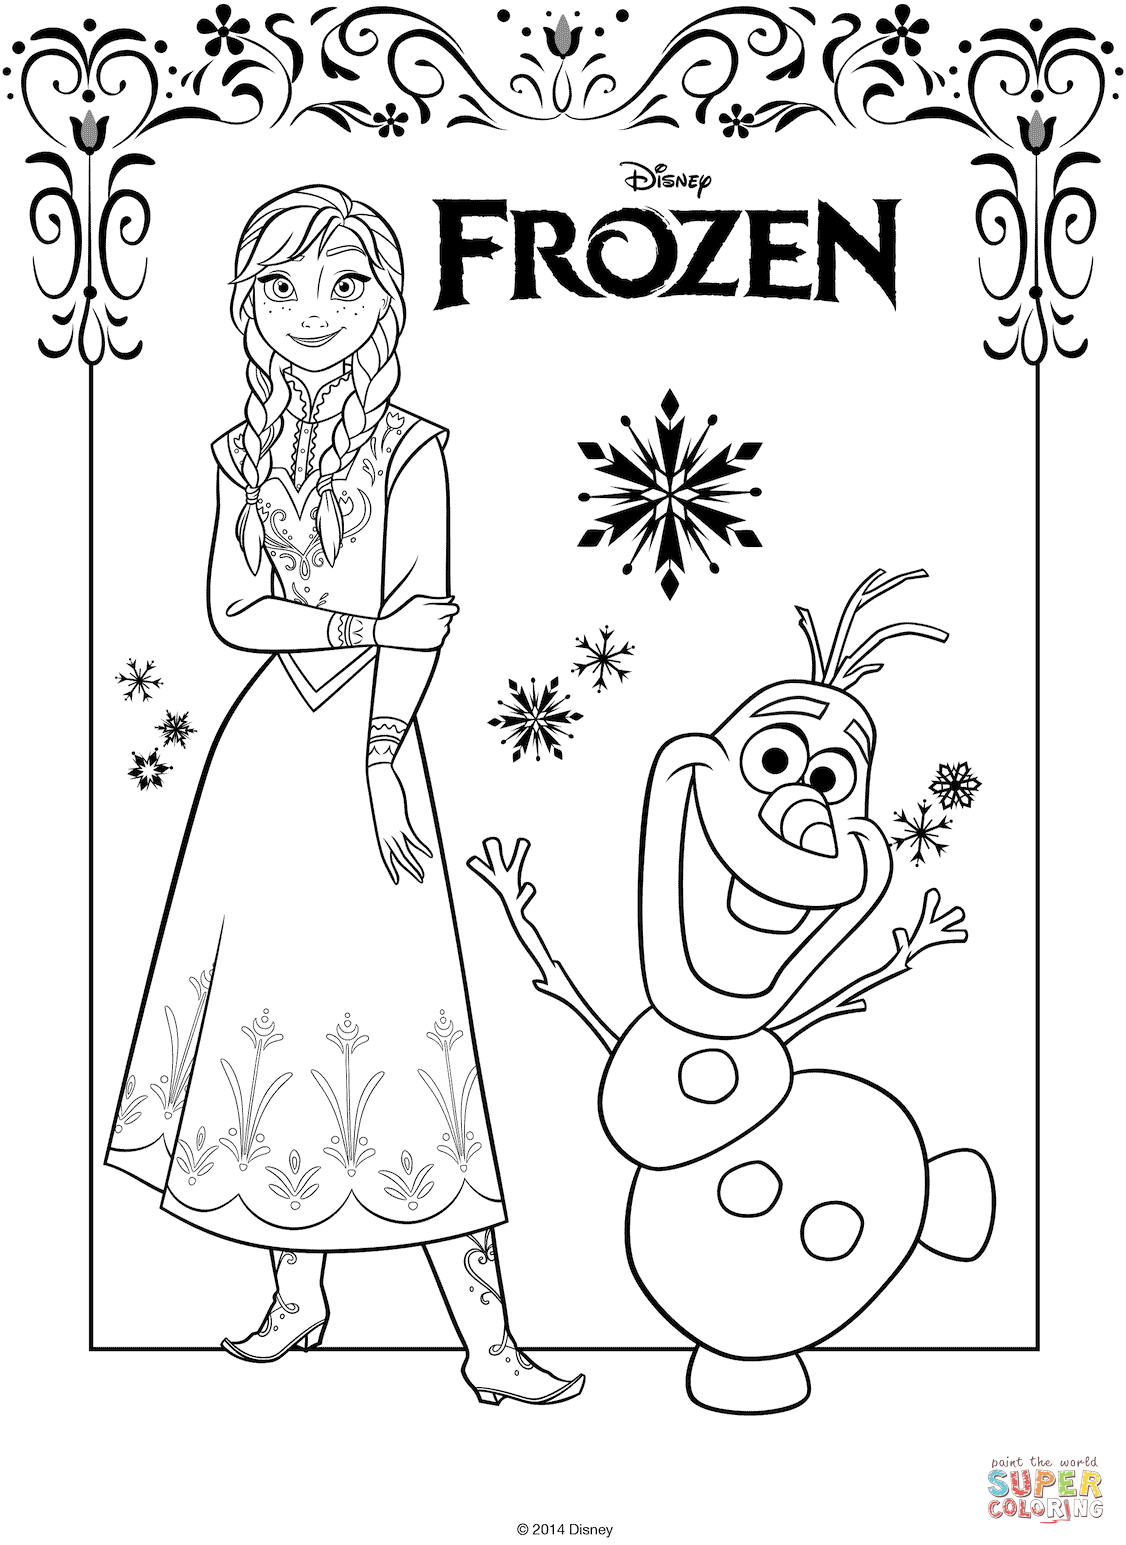 The Frozen Coloring Pages Free Coloring Pages